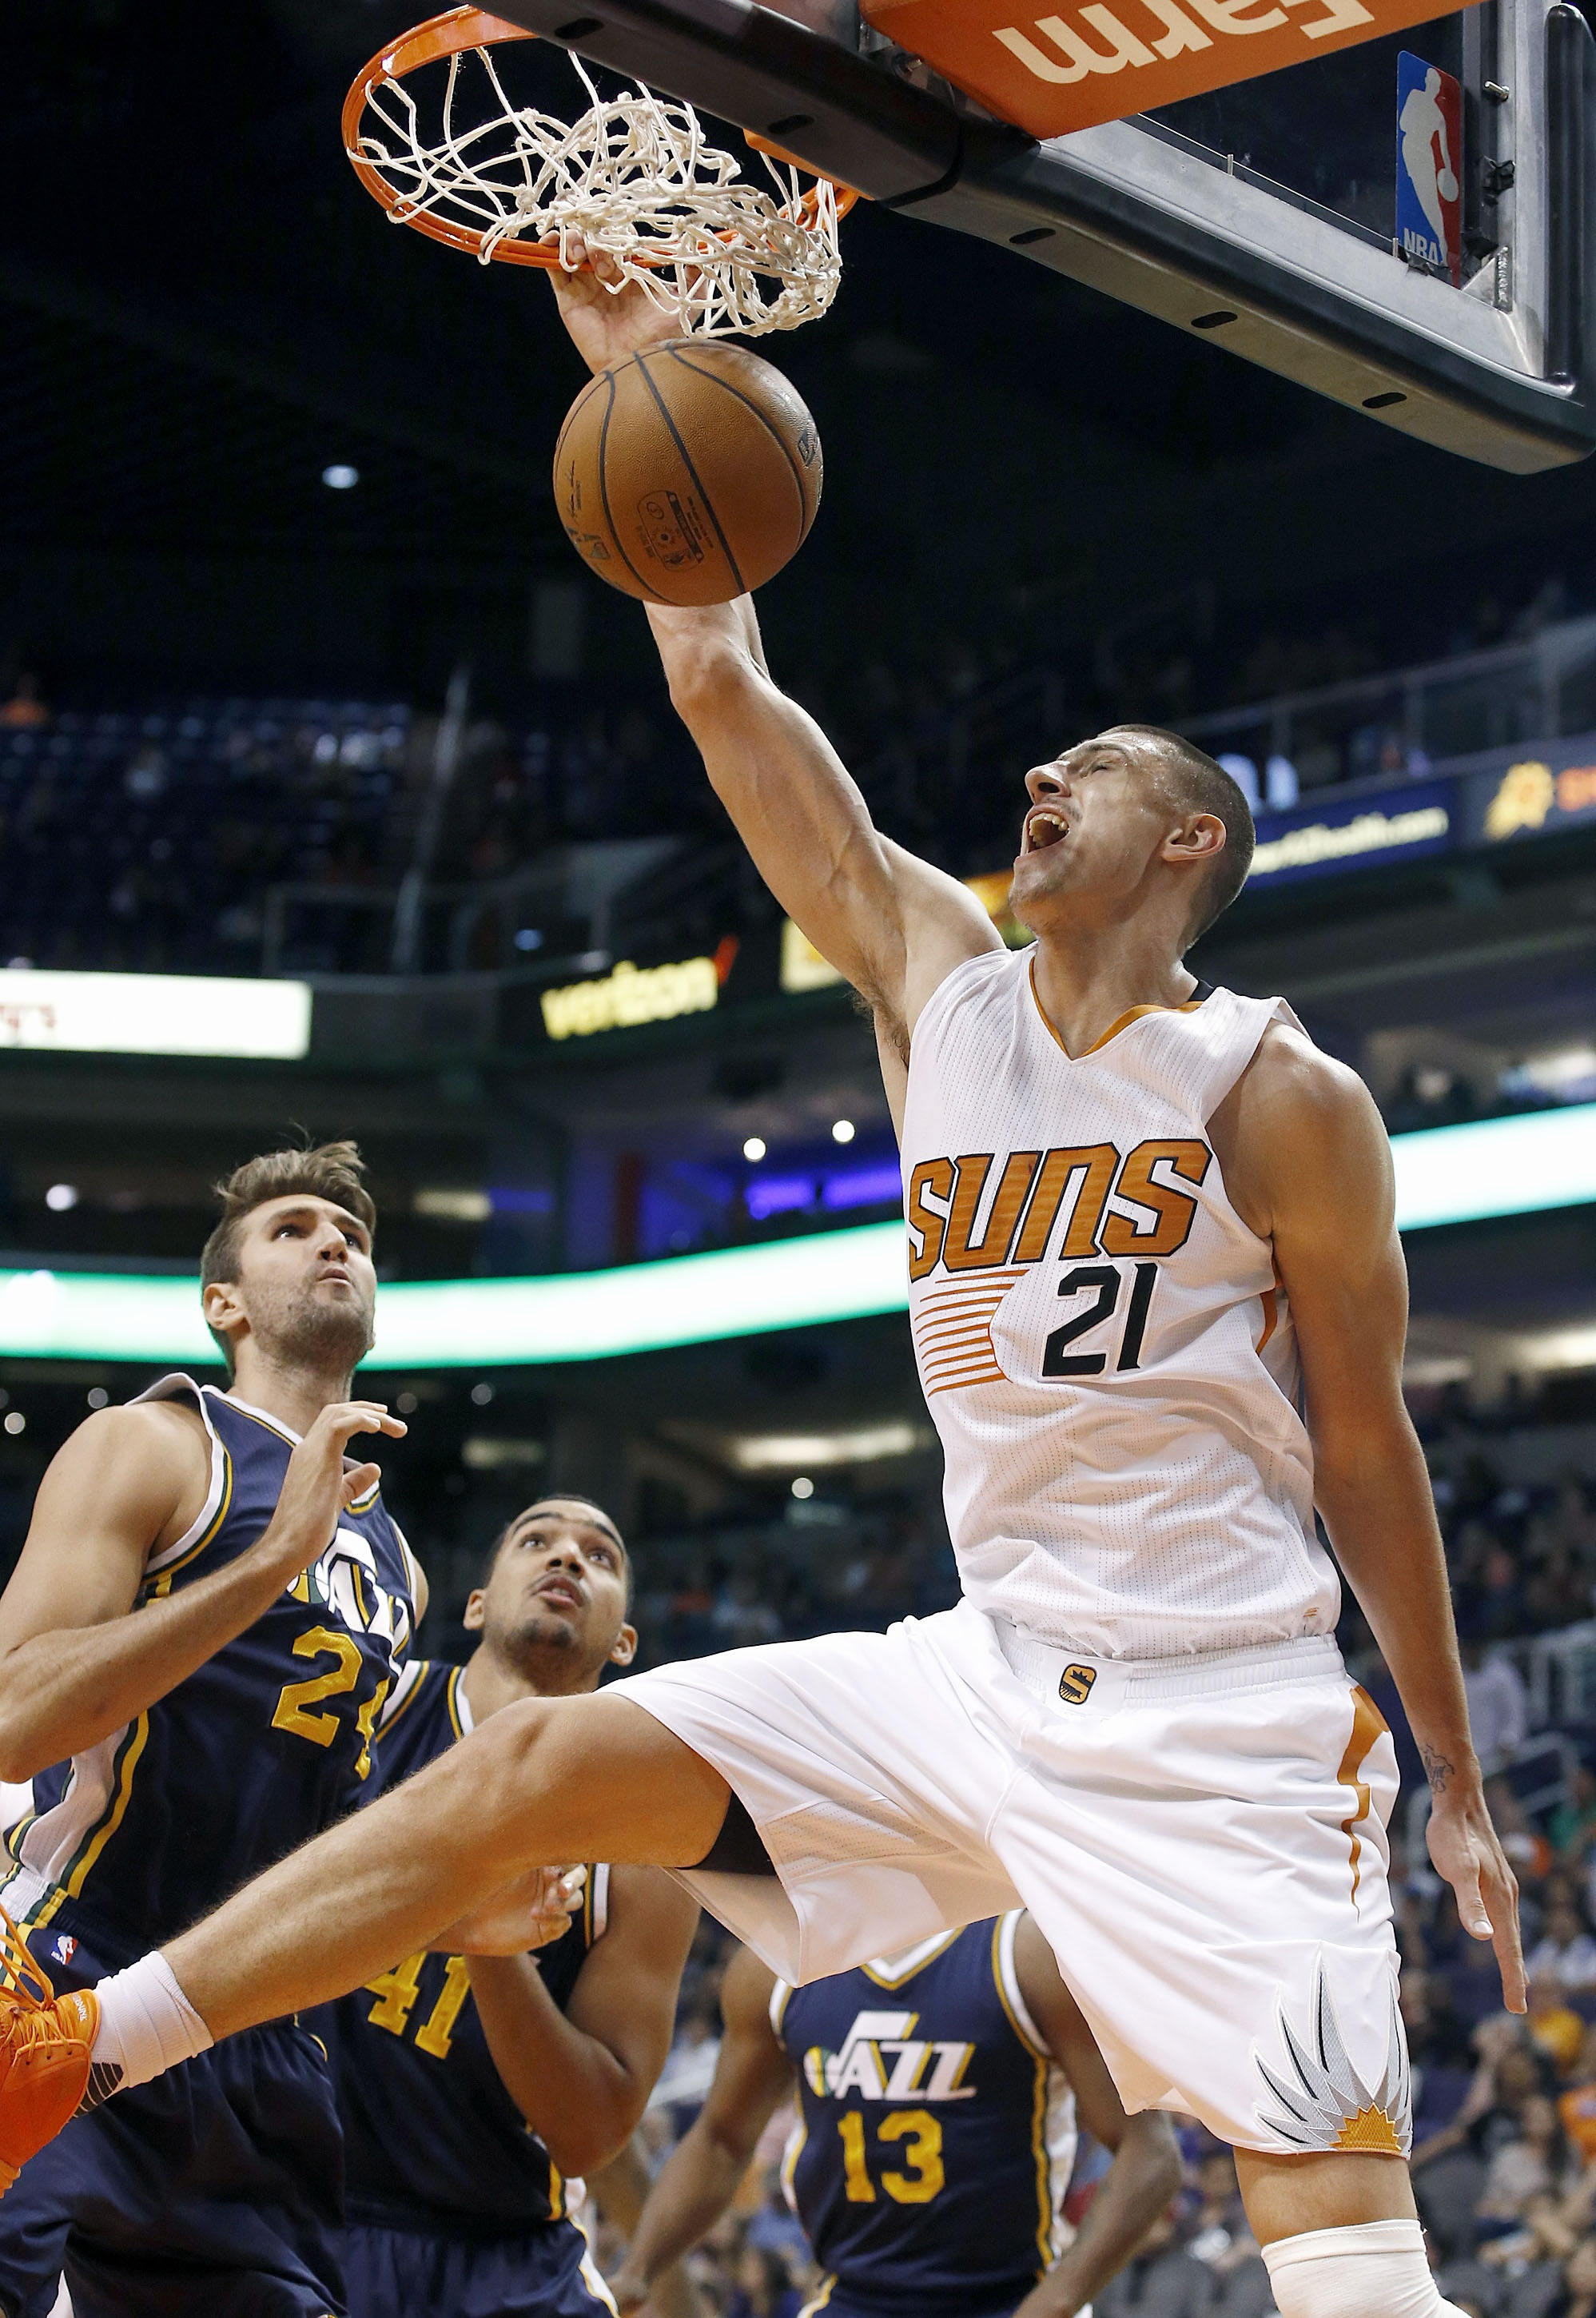 Phoenix Suns' Alex Len (21), of Ukraine, dunks as Utah Jazz's Jeff Withey, left, and Trey Lyles (41) watch during the first half of an NBA preseason basketball game Friday, Oct. 9, 2015, in Phoenix. (AP Photo/Ross D. Franklin)